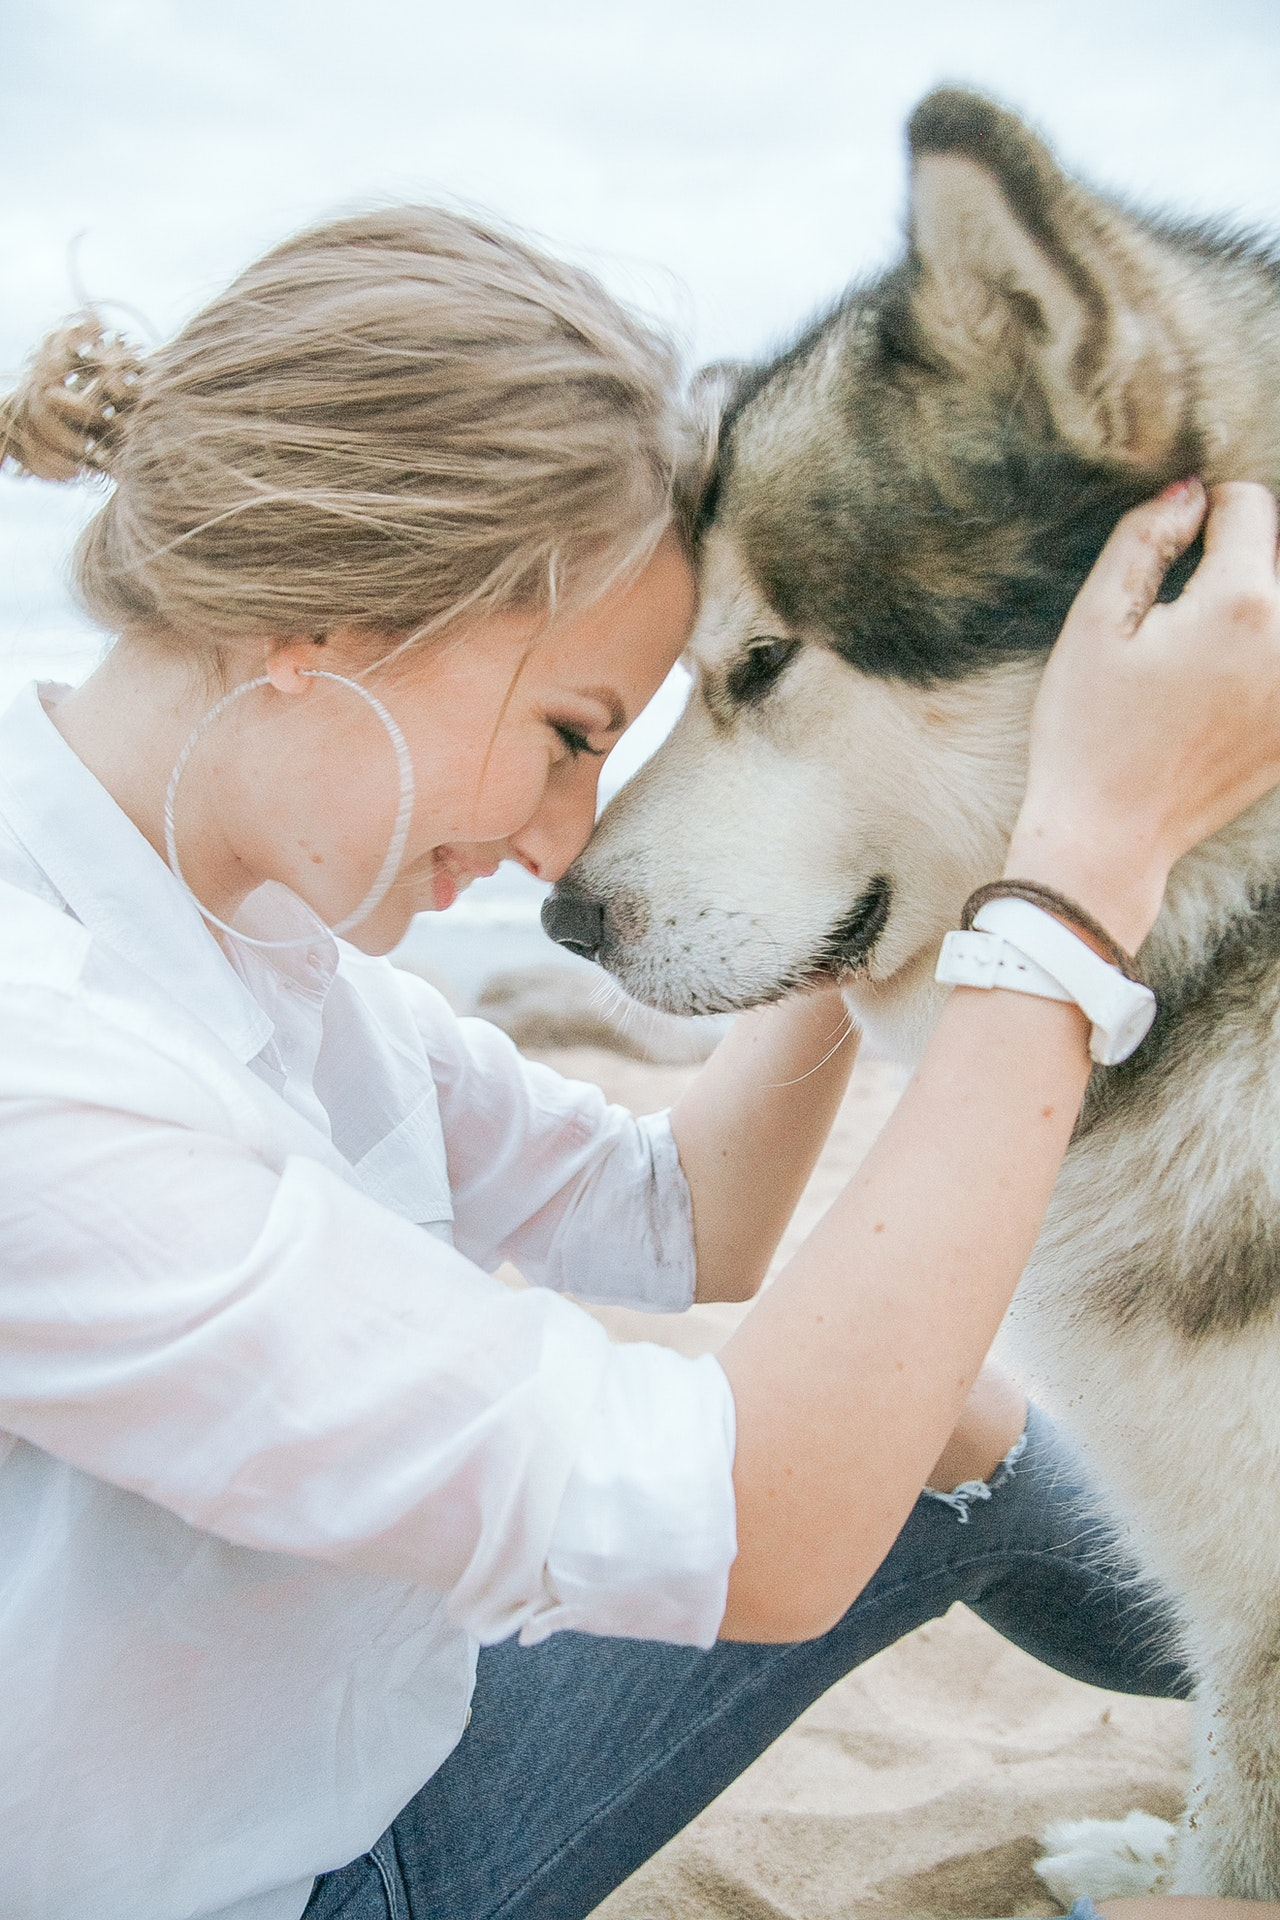 Husky dog and owner